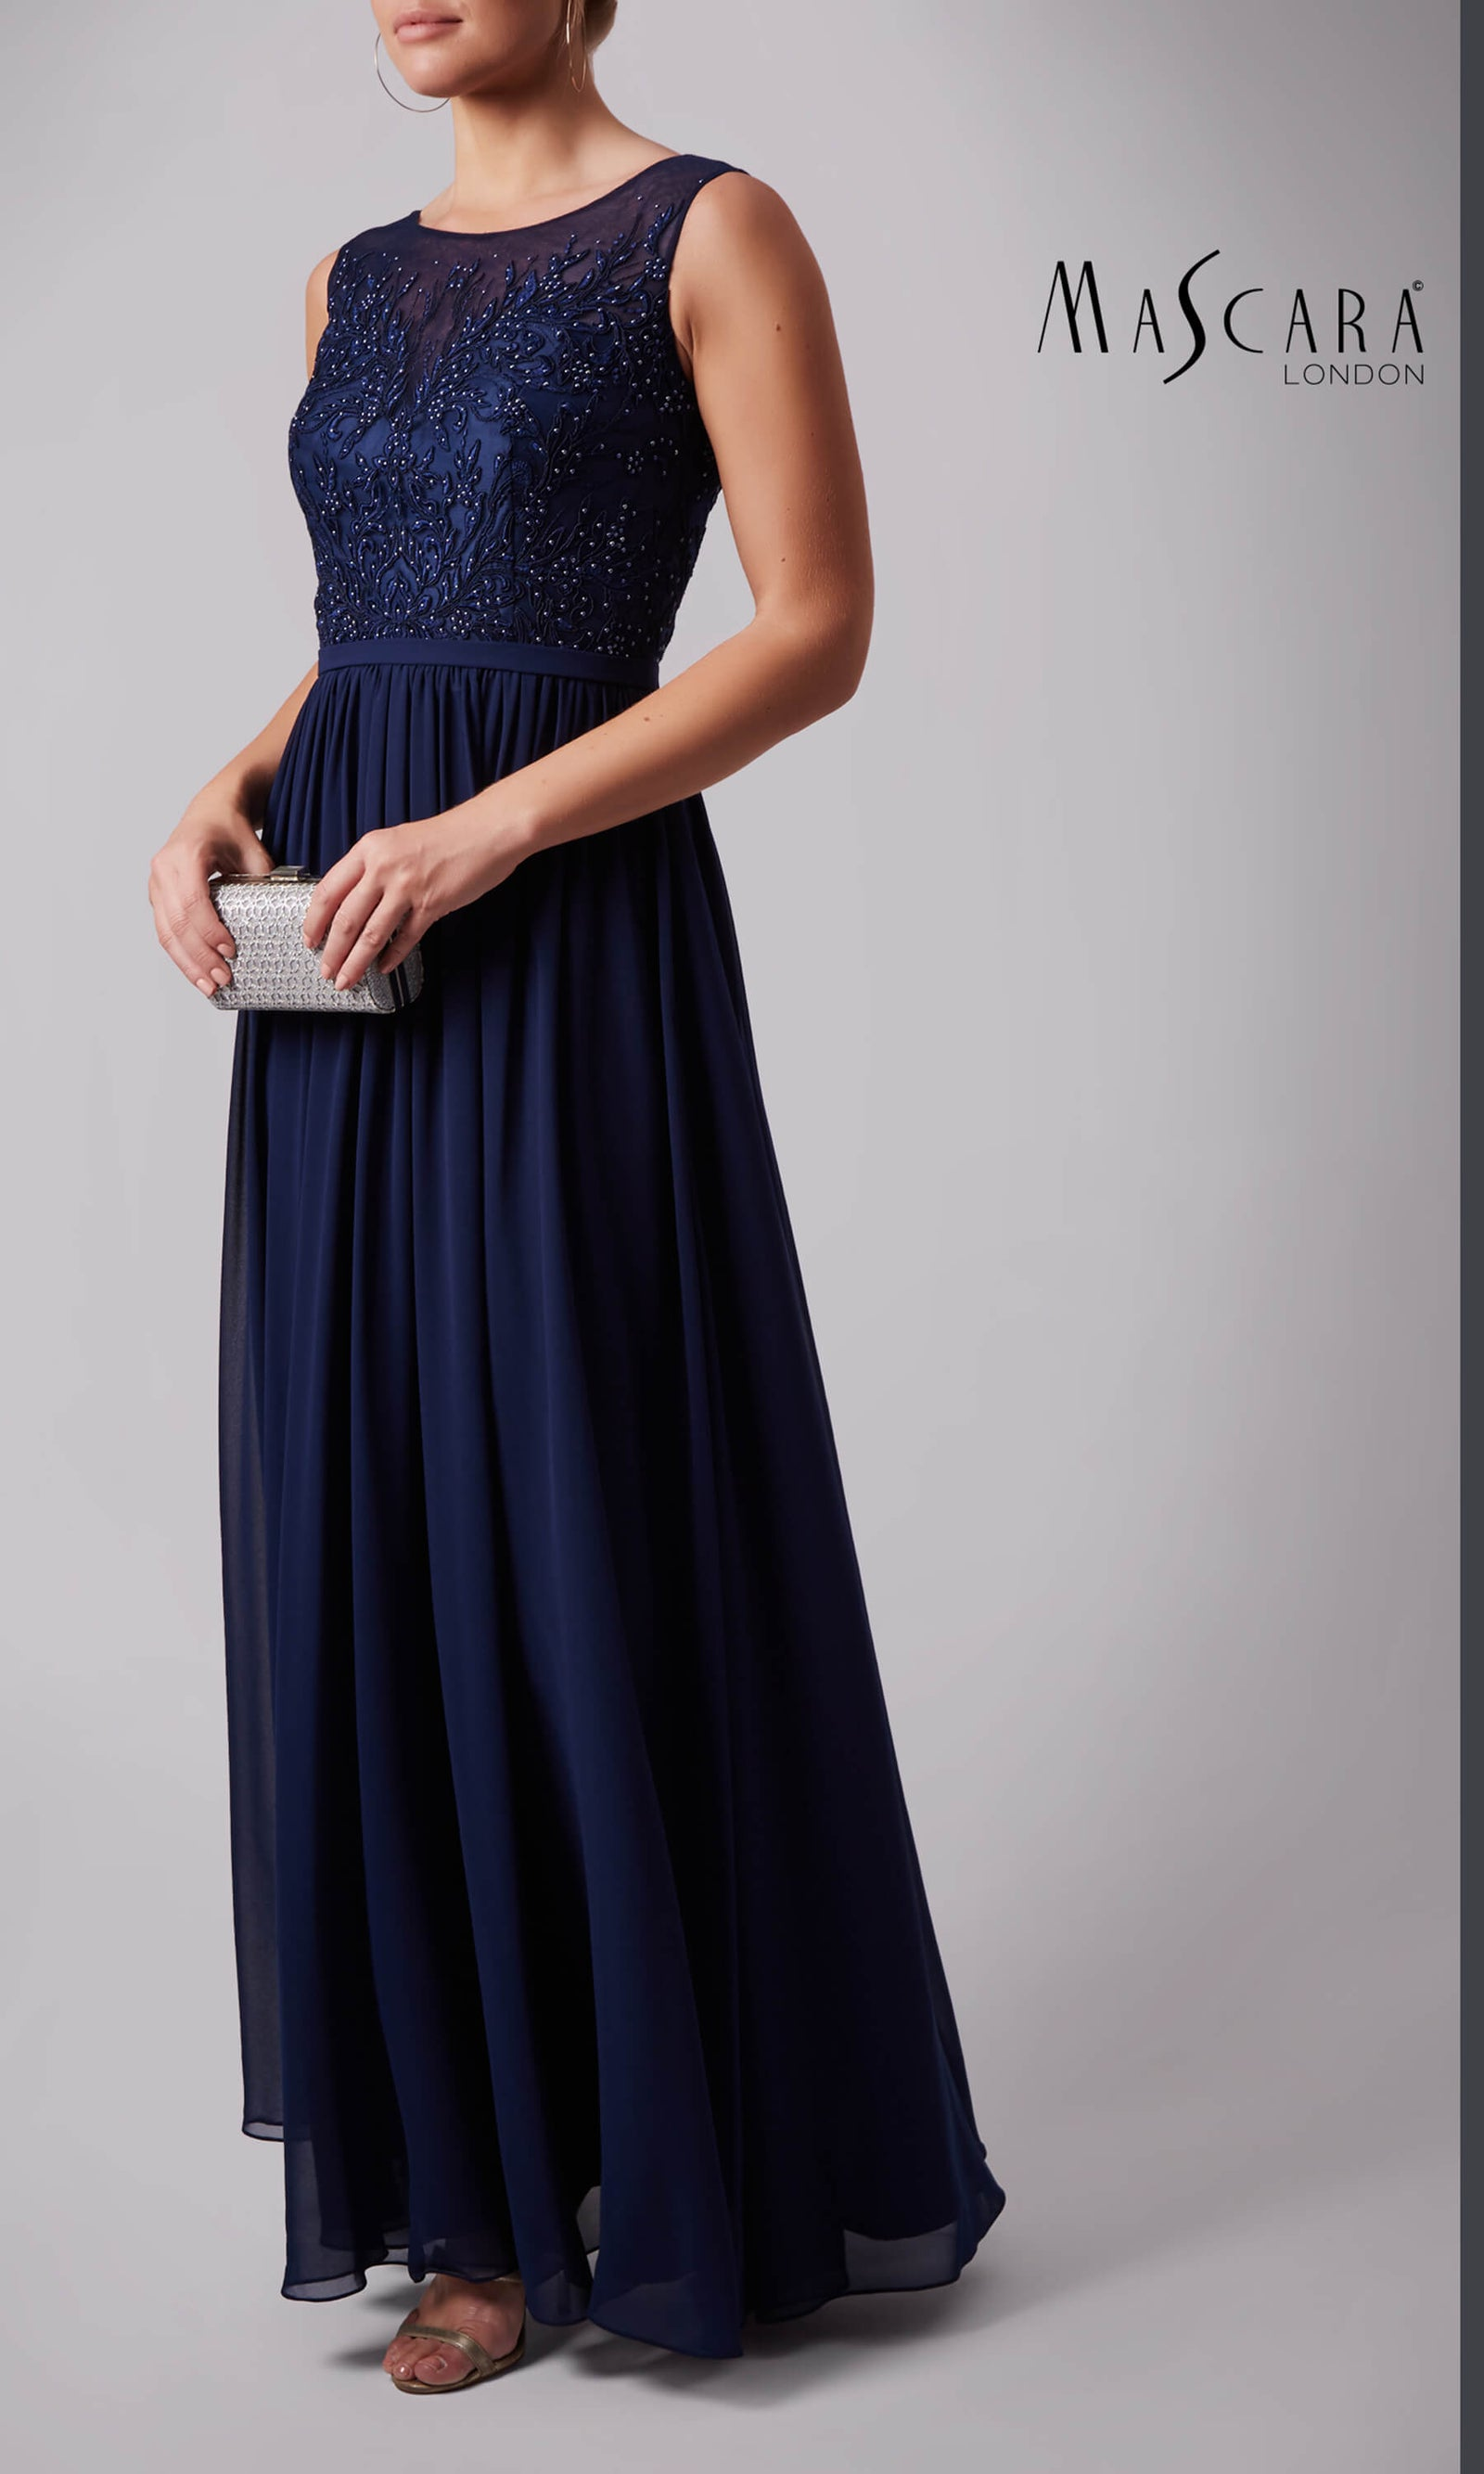 MC169031 Navy Mascara Full Length Evening Prom Dress - Fab Frocks